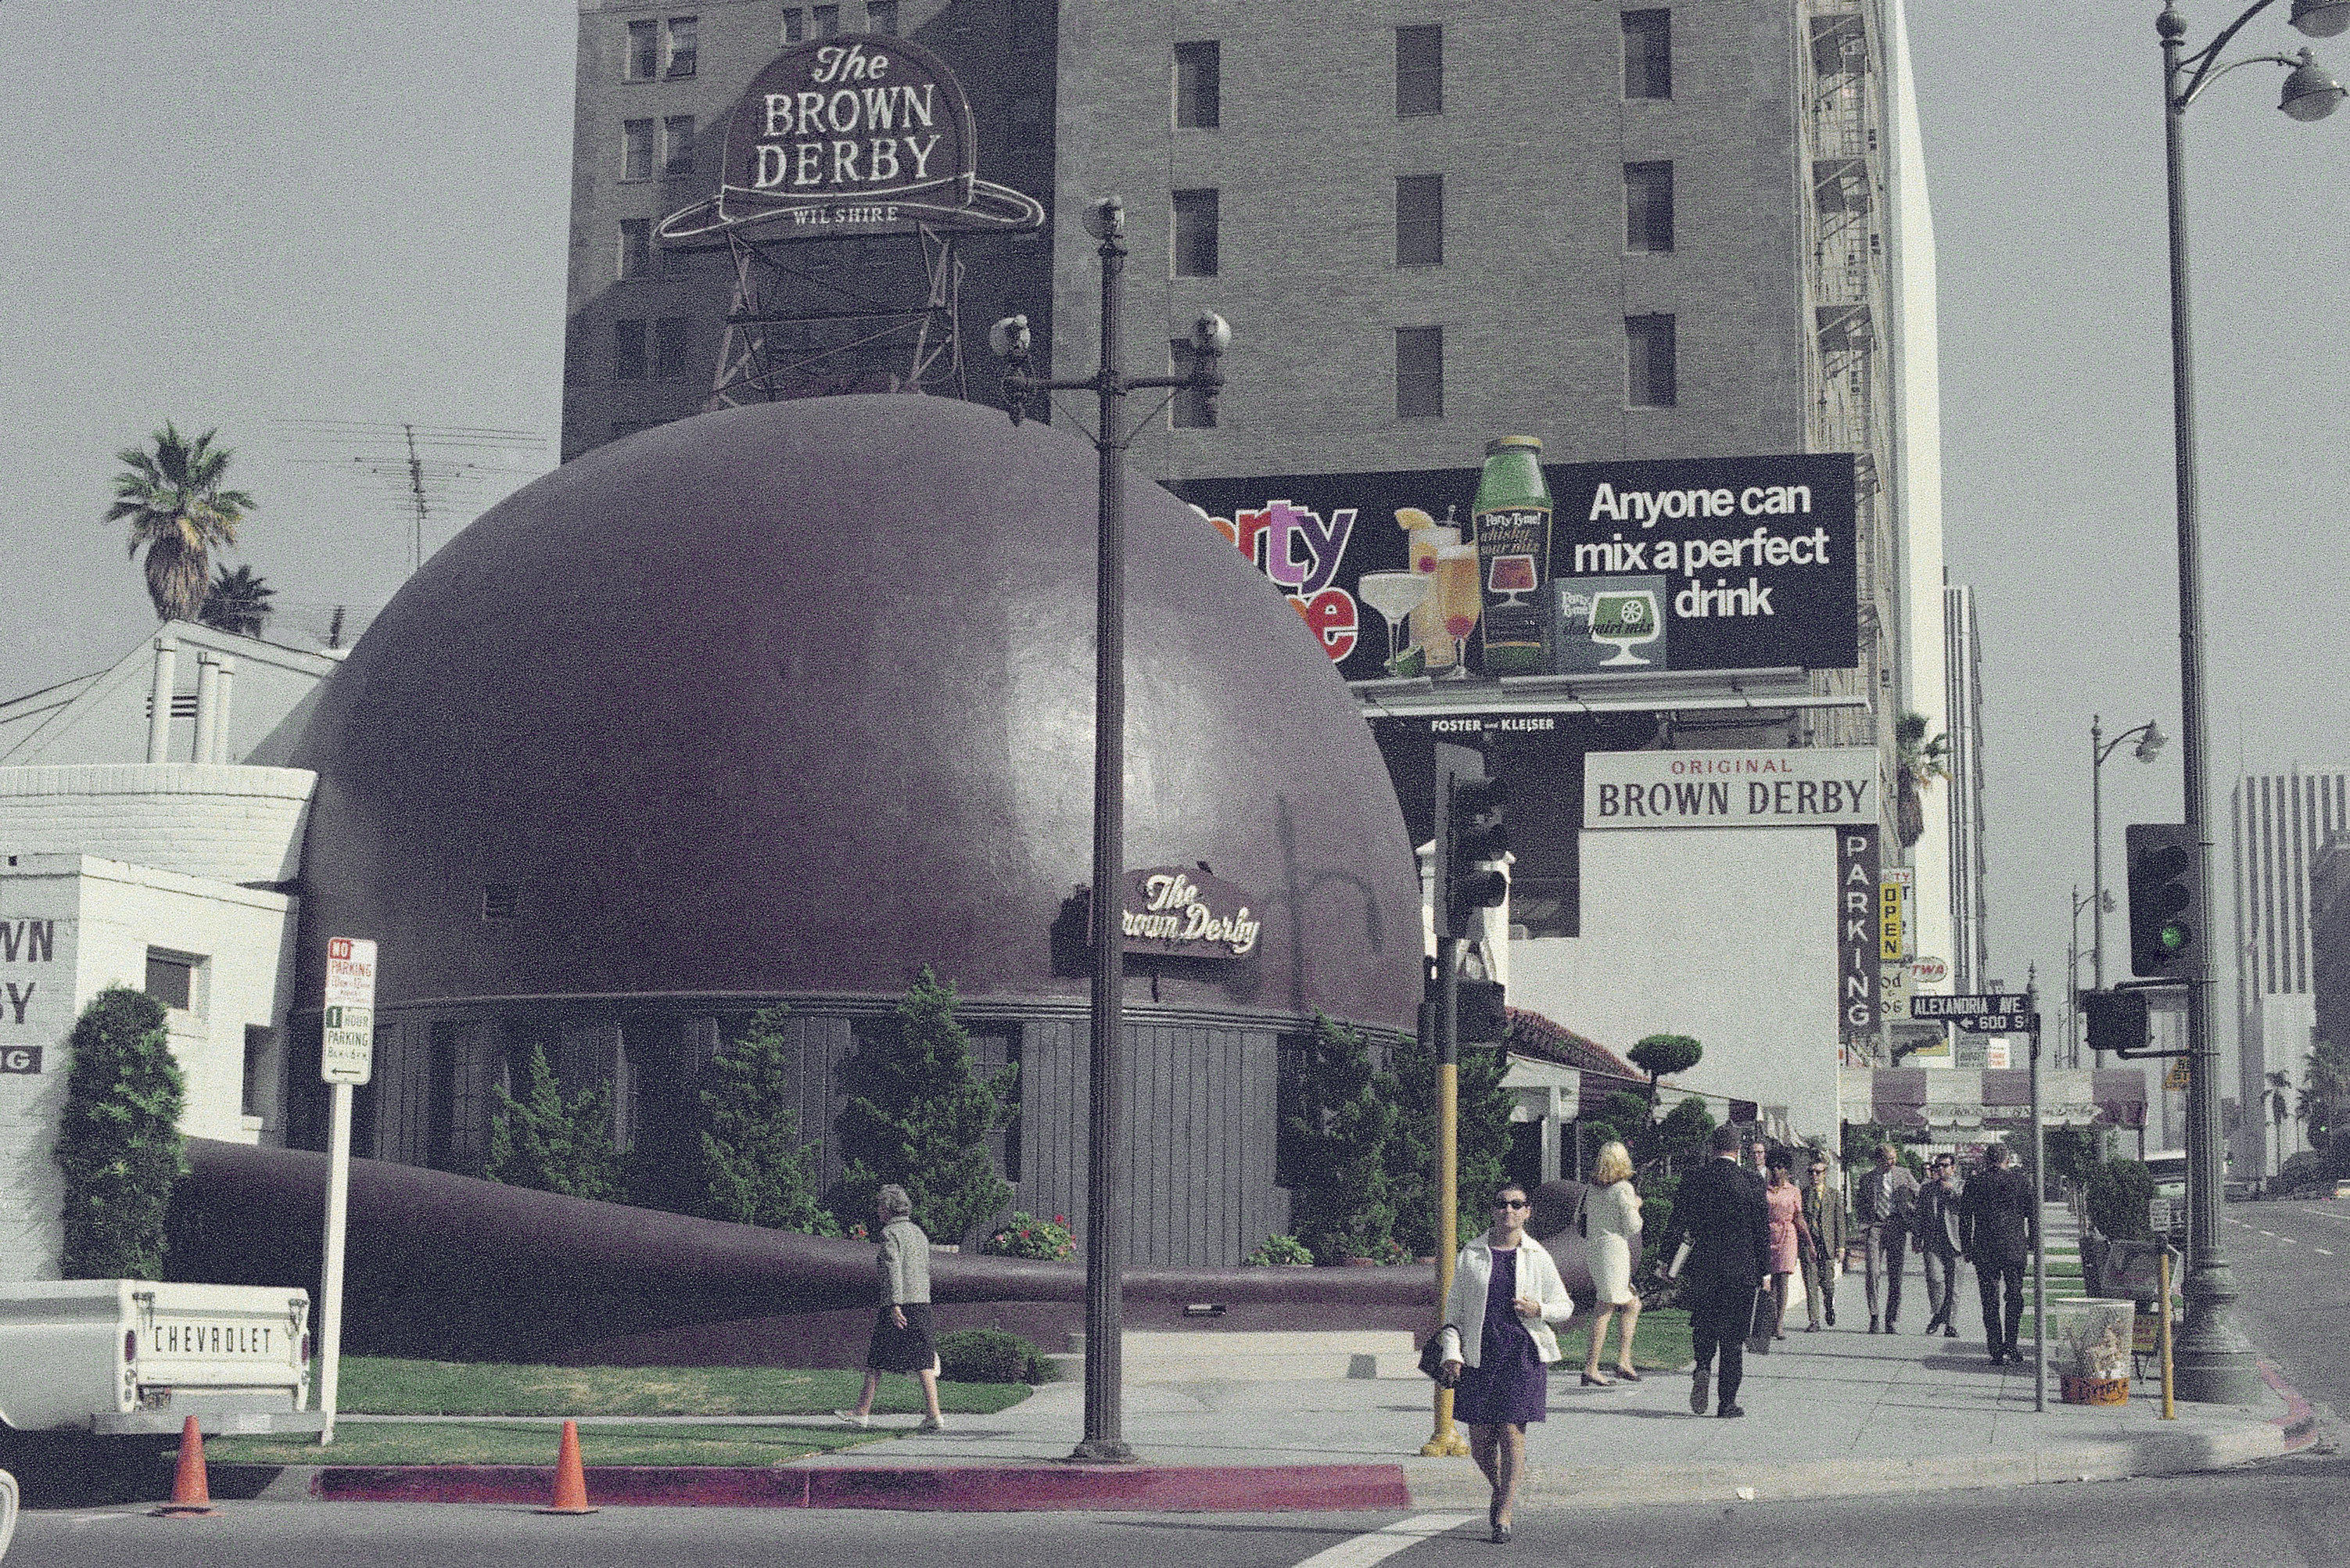 A restaurant in an eye-catching building, the Brown Derby, is shown in Los Angeles, Nov. 1970. (AP Photo/David F. Smith)